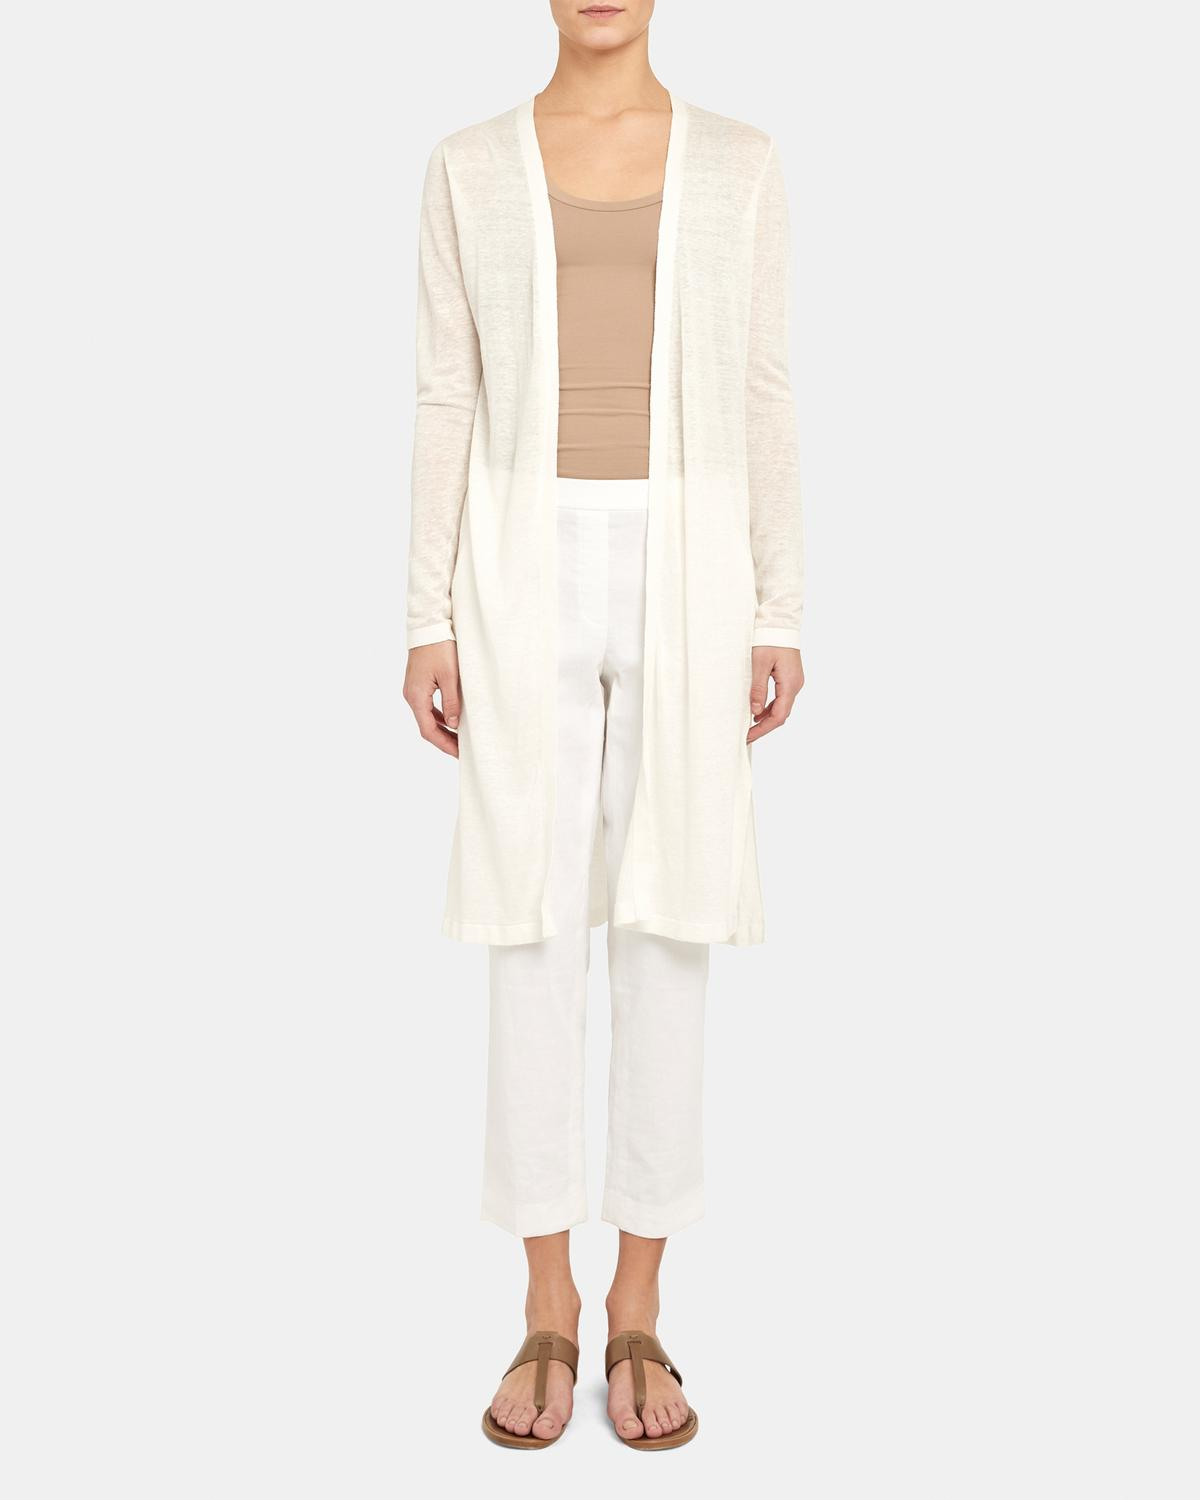 Long Cardigan in Linen-Viscose 0 - click to view larger image